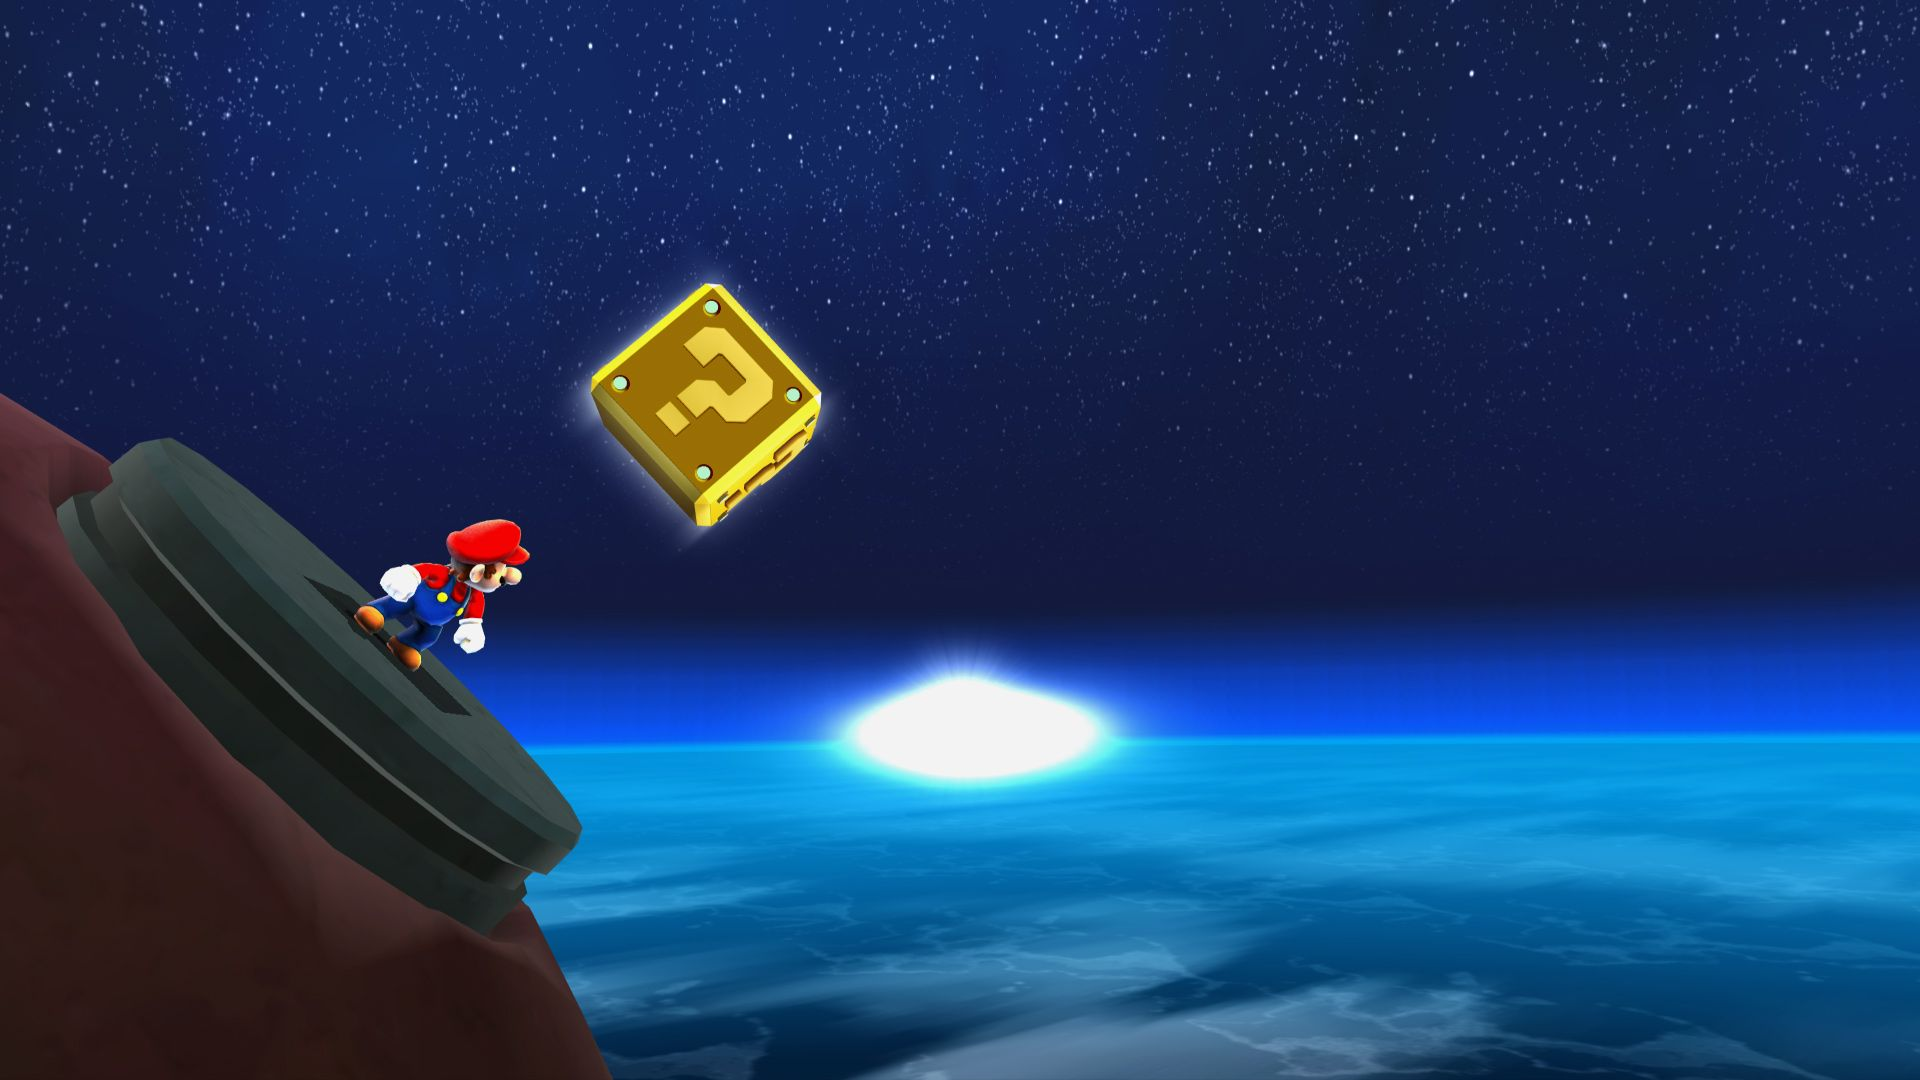 Backgrounds For Super Mario Galaxy Wallpaper 1920x1080 Super Mario Galaxy Galaxy Wallpaper Super Mario